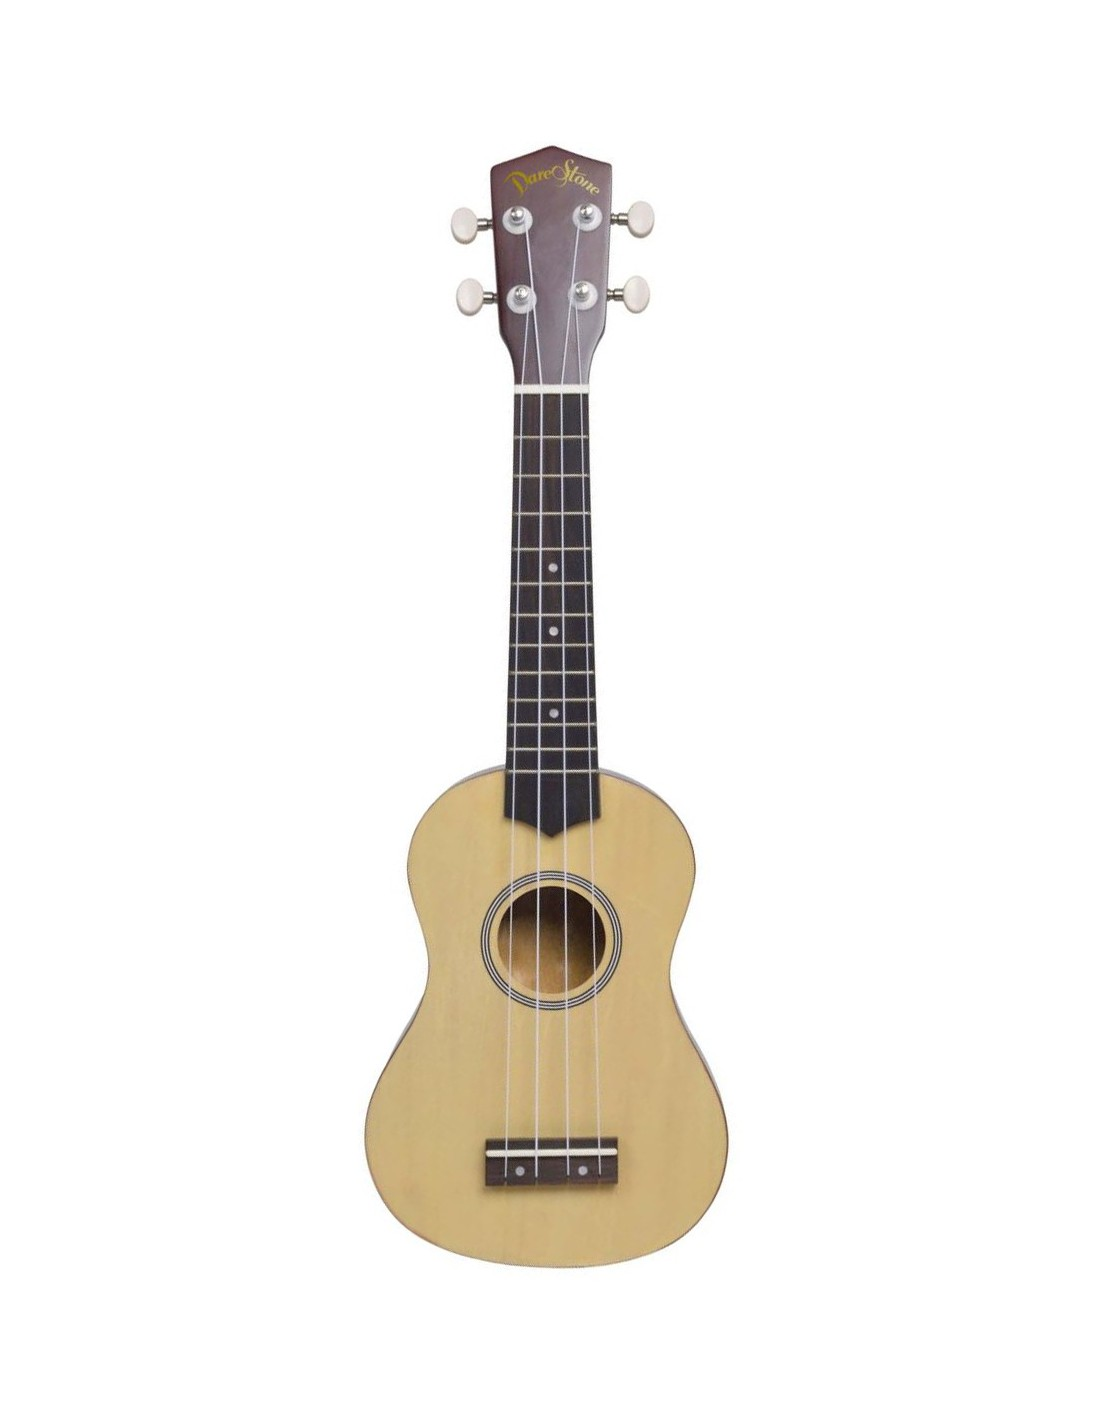 Dare stone uksnt soprano ukul l naturel avec housse for Housse ukulele